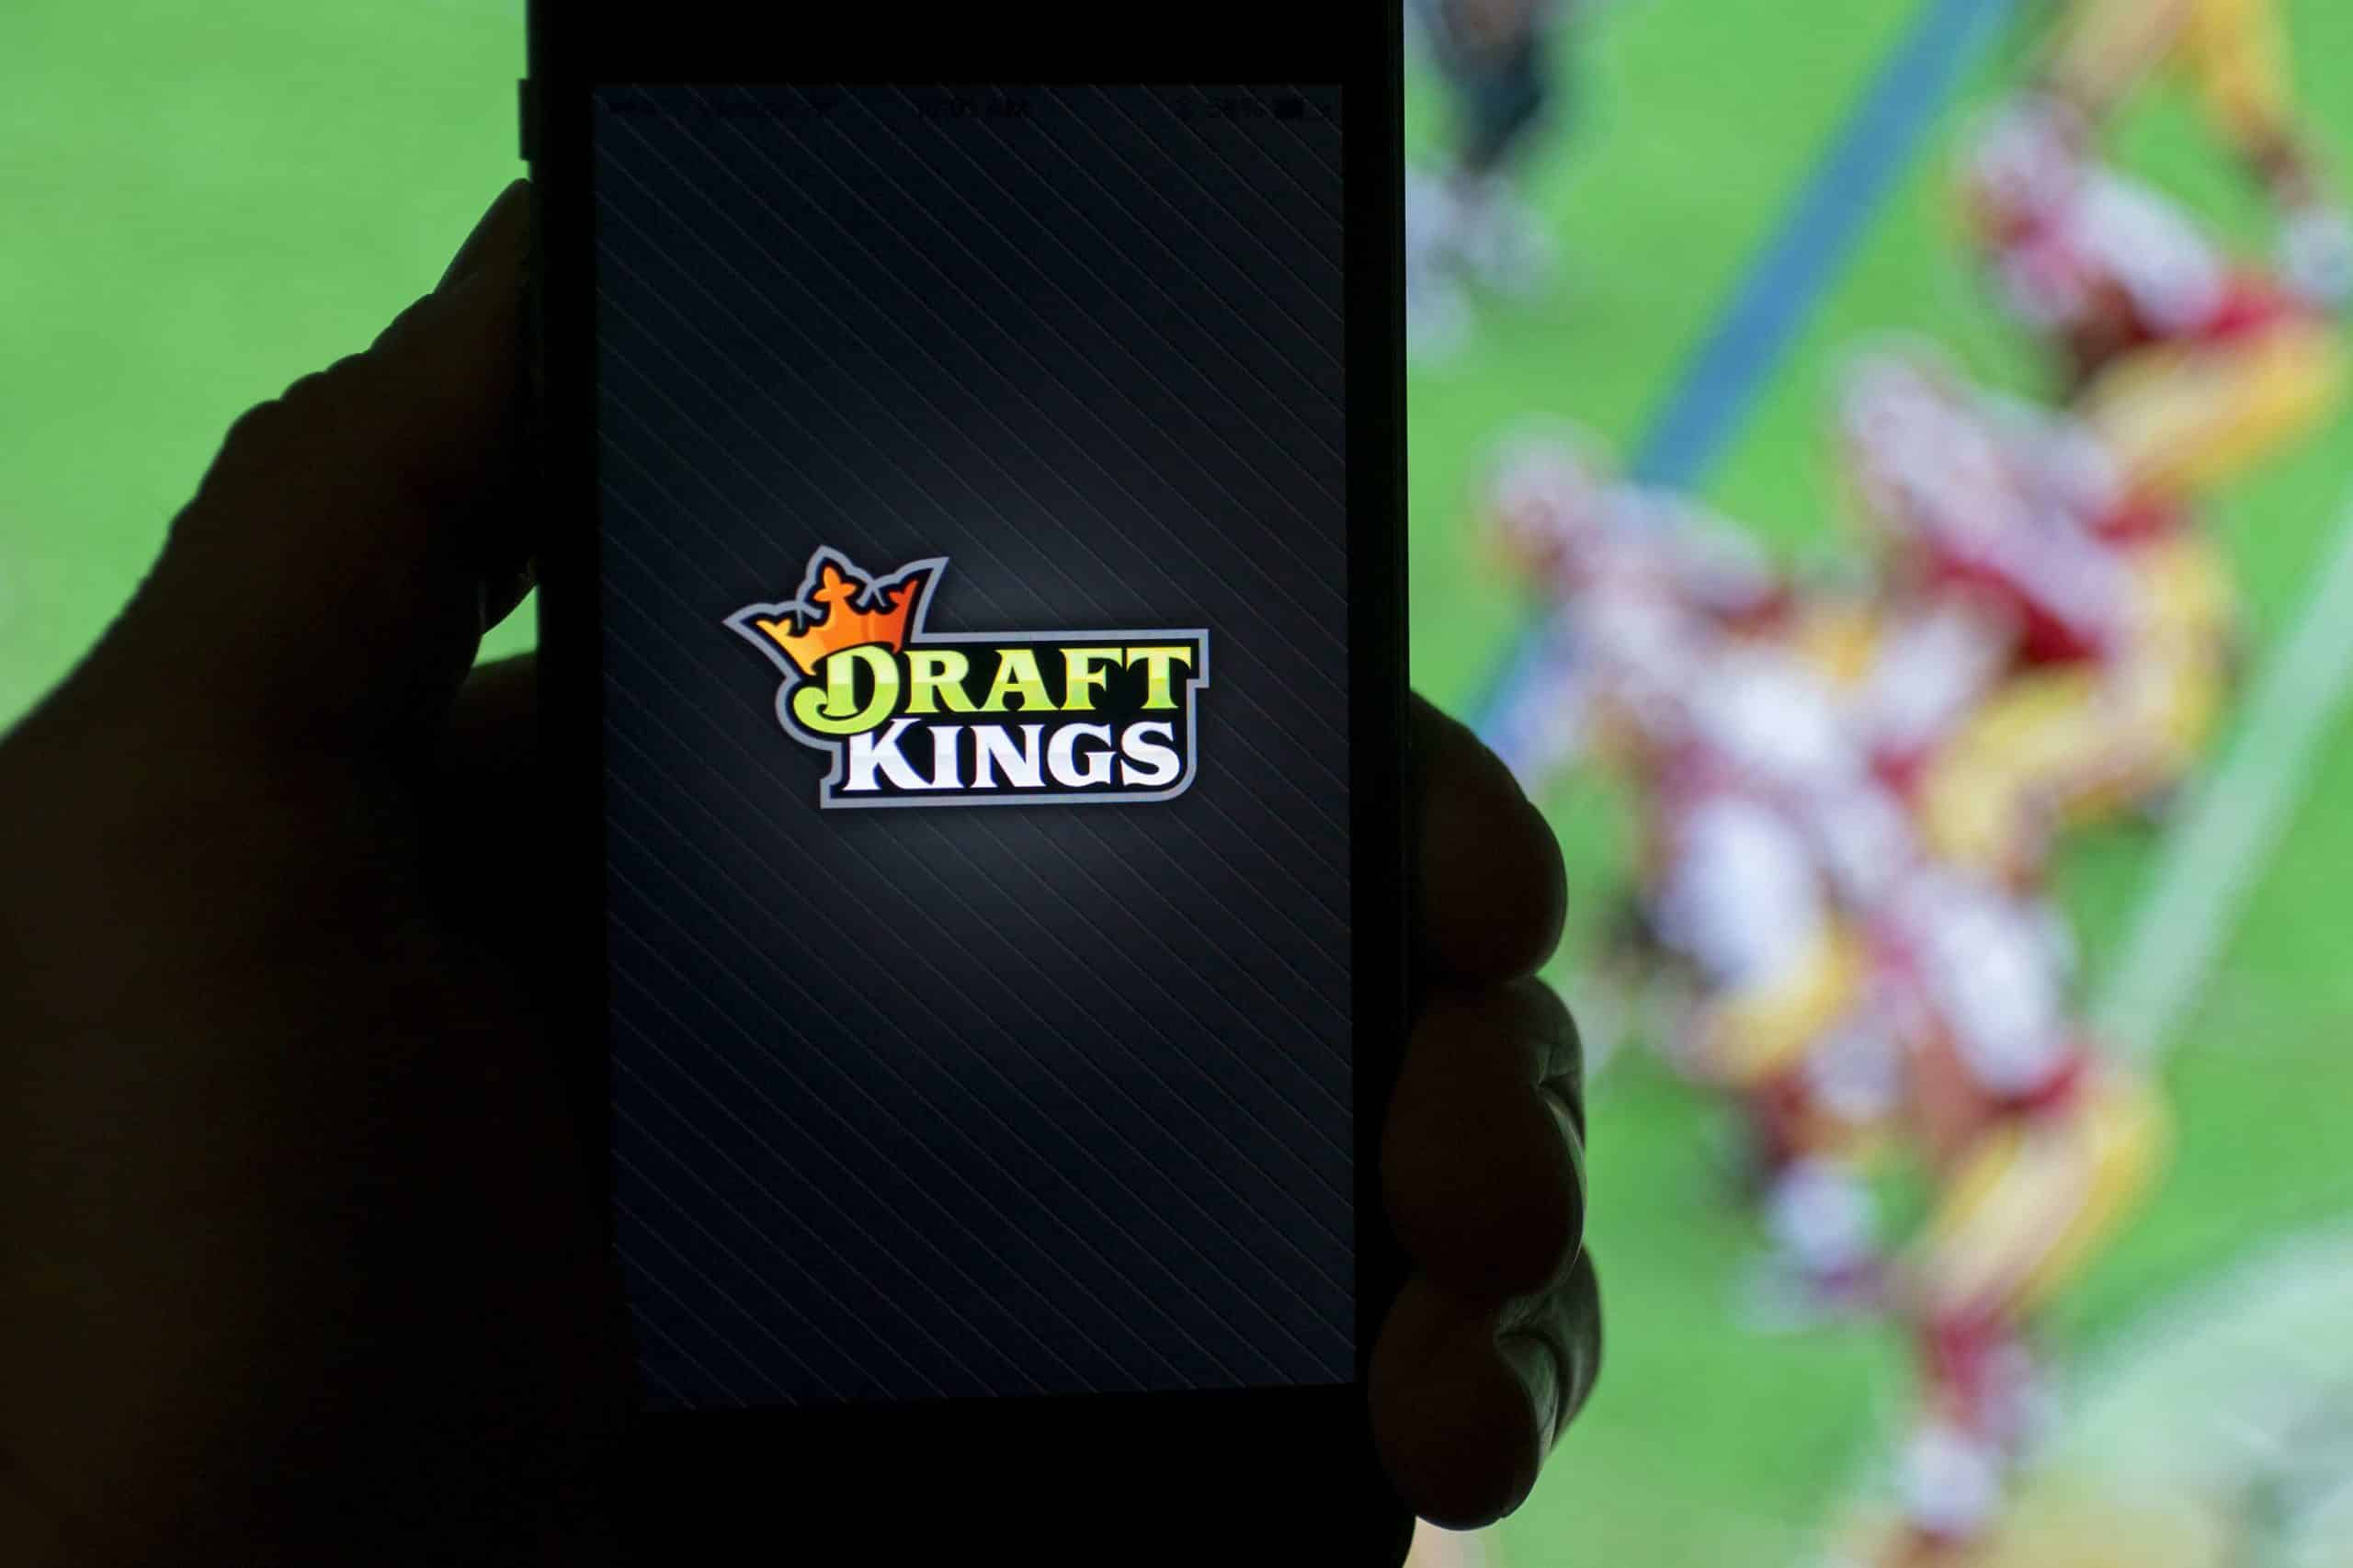 Photo of New Jersey as nationwide model for online legal sports betting: Says the CEO of DraftKings